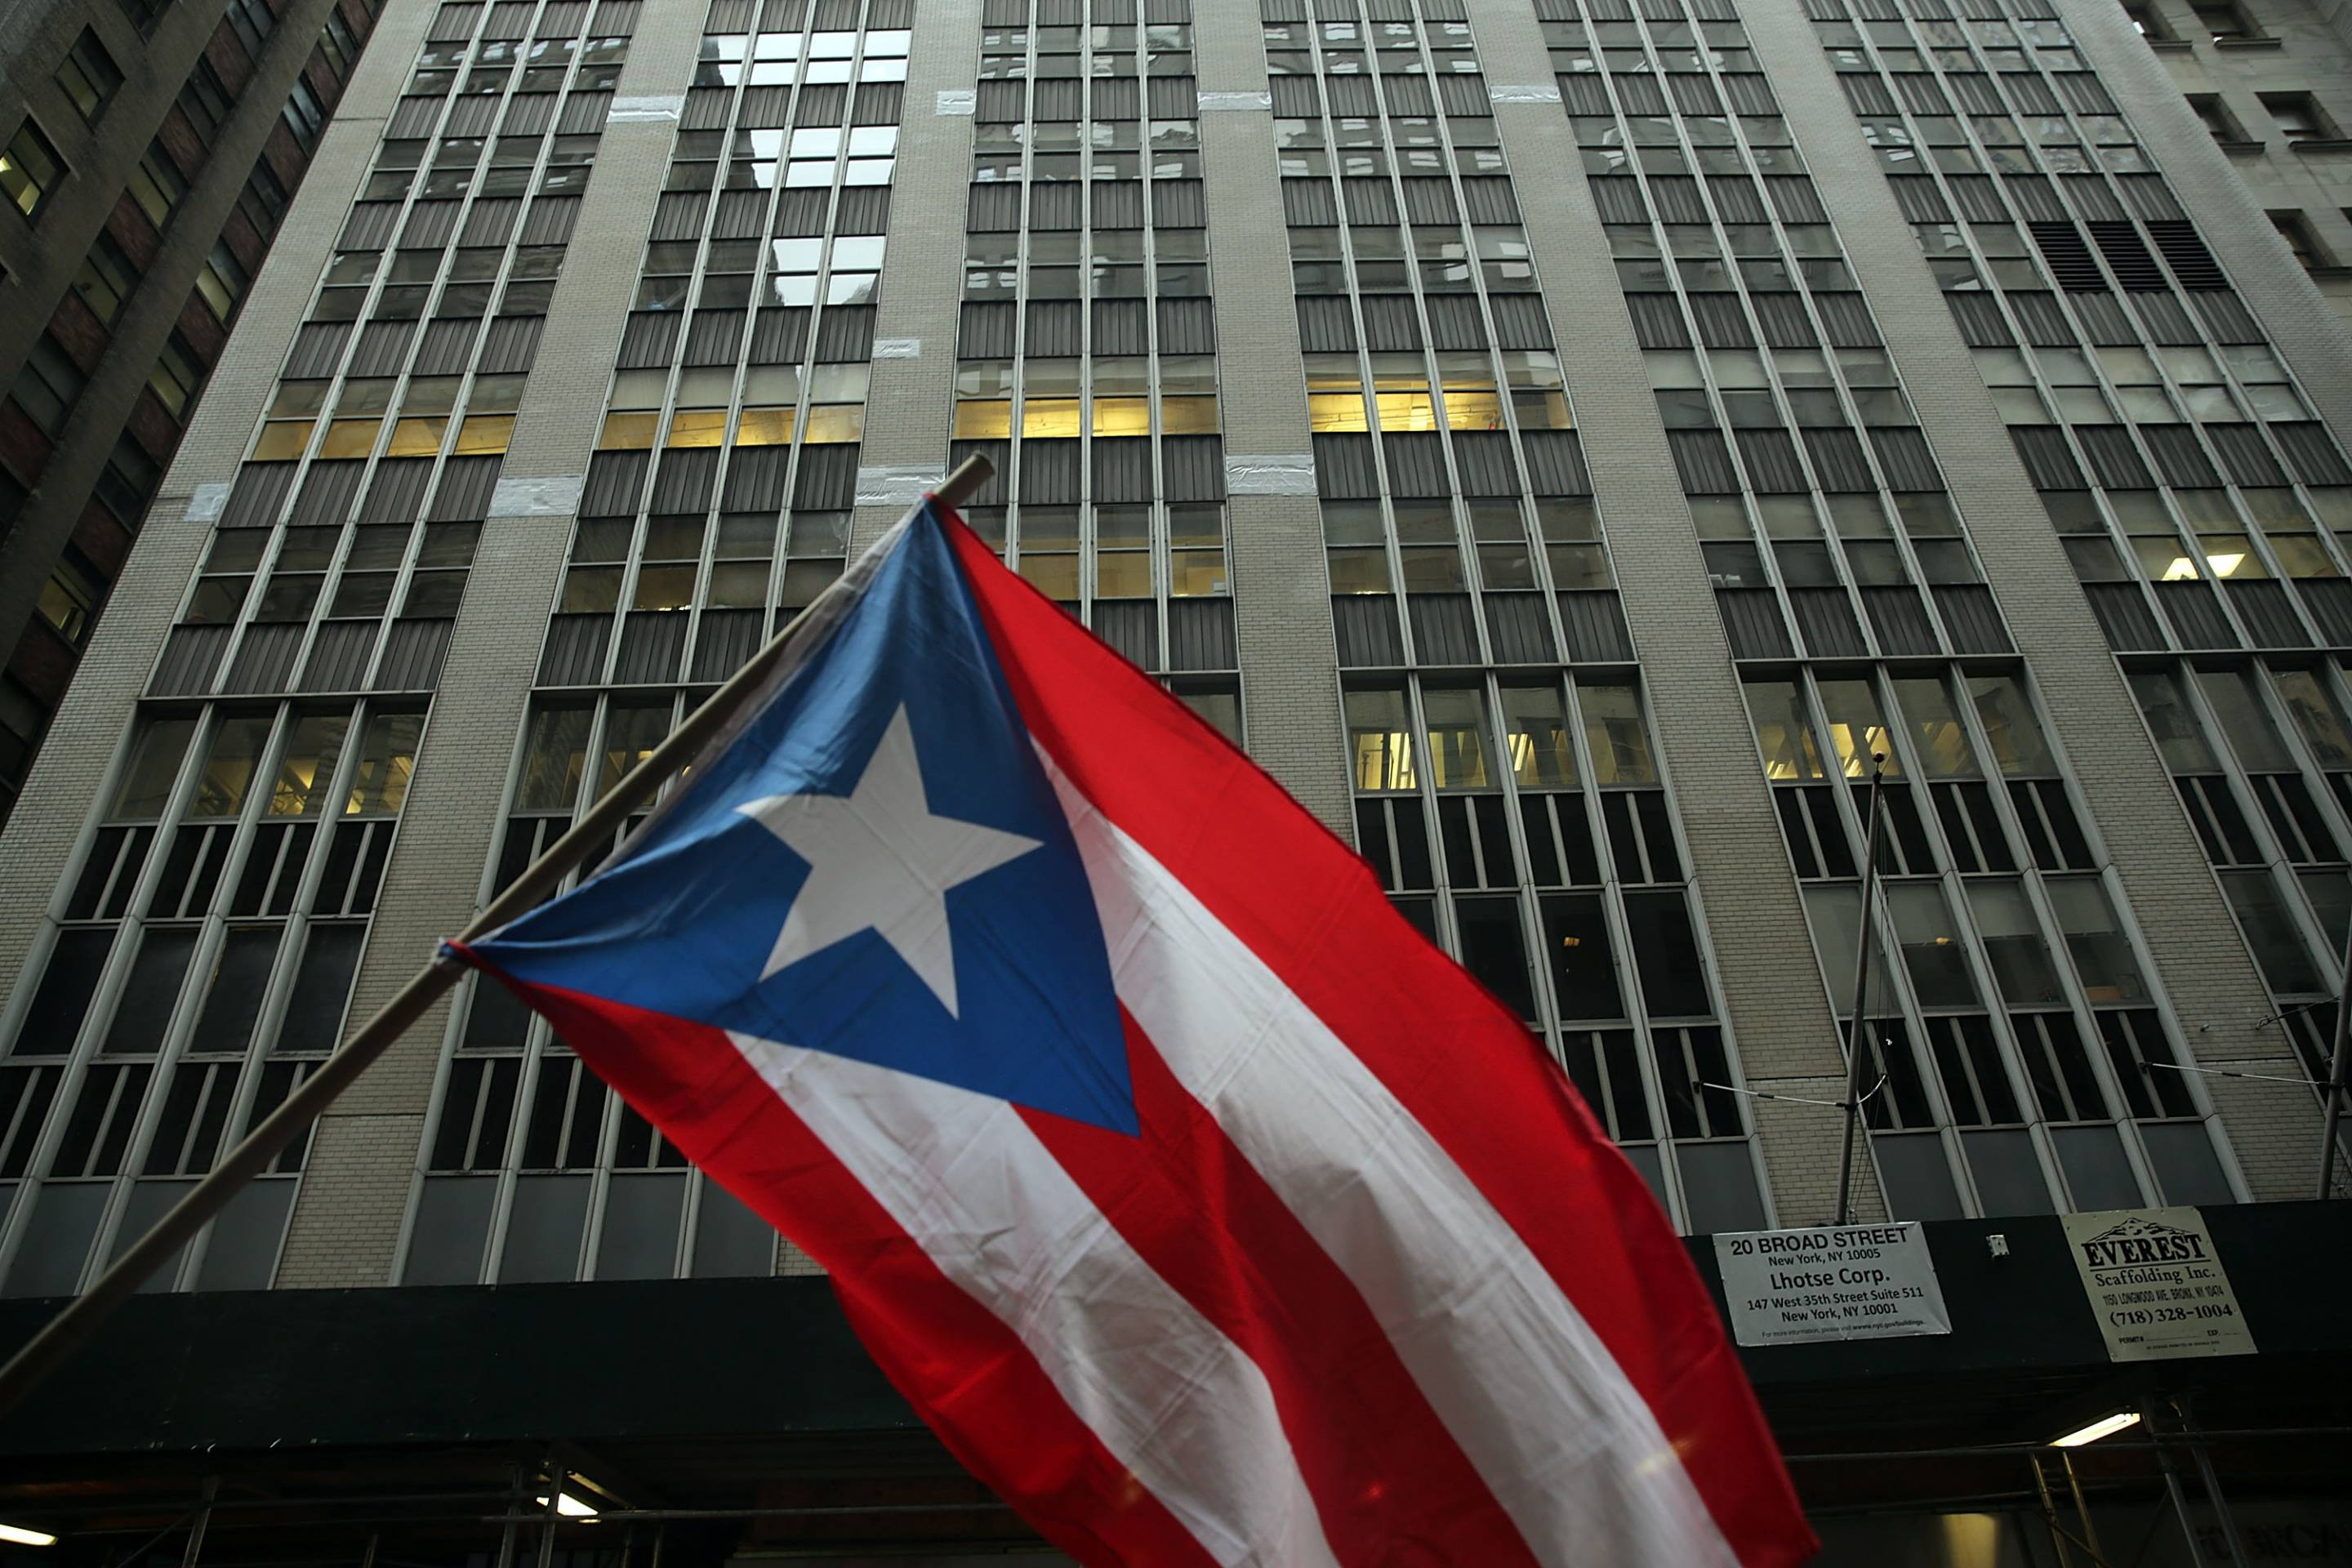 Activists Demonstrate Against Cutbacks And Austerity Measures In Puerto Rico